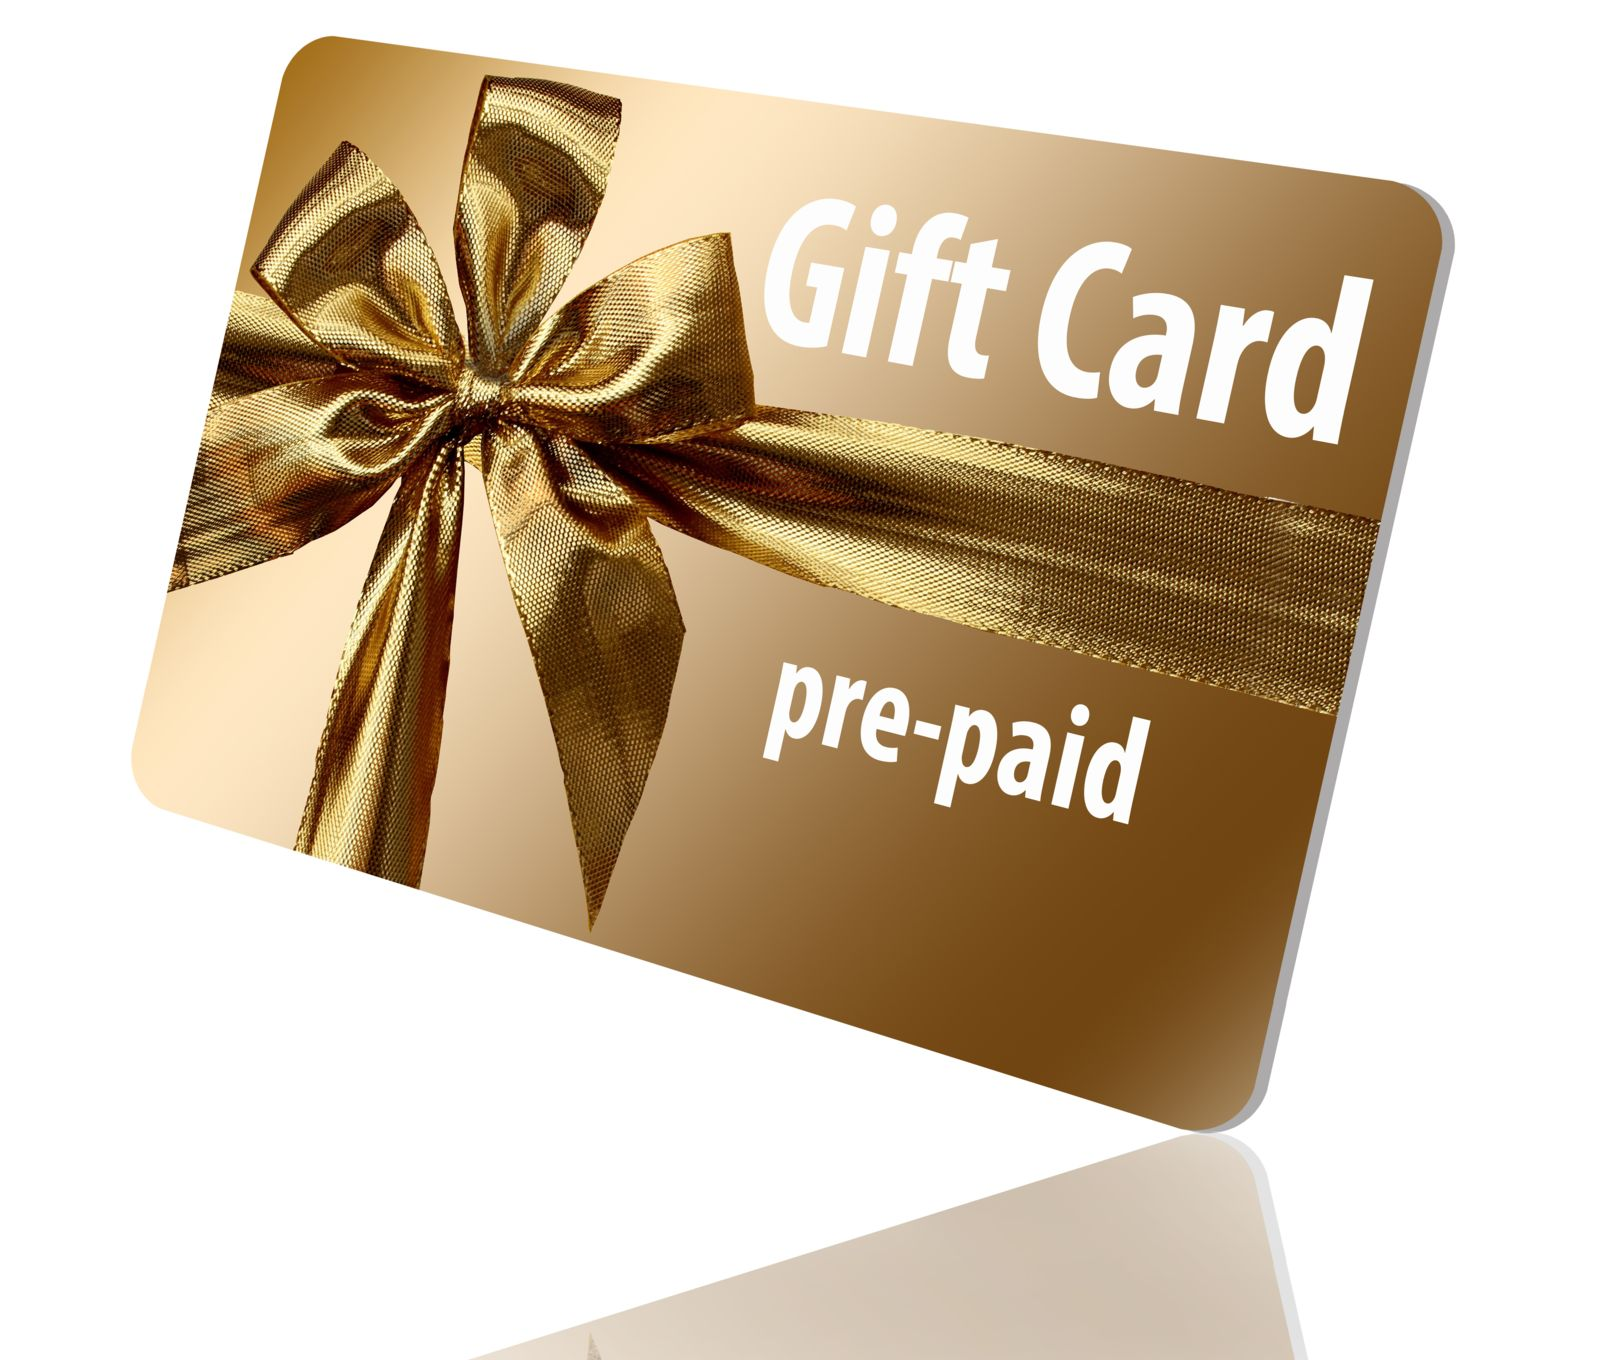 The Law does not protect Gift Card Users in Washington